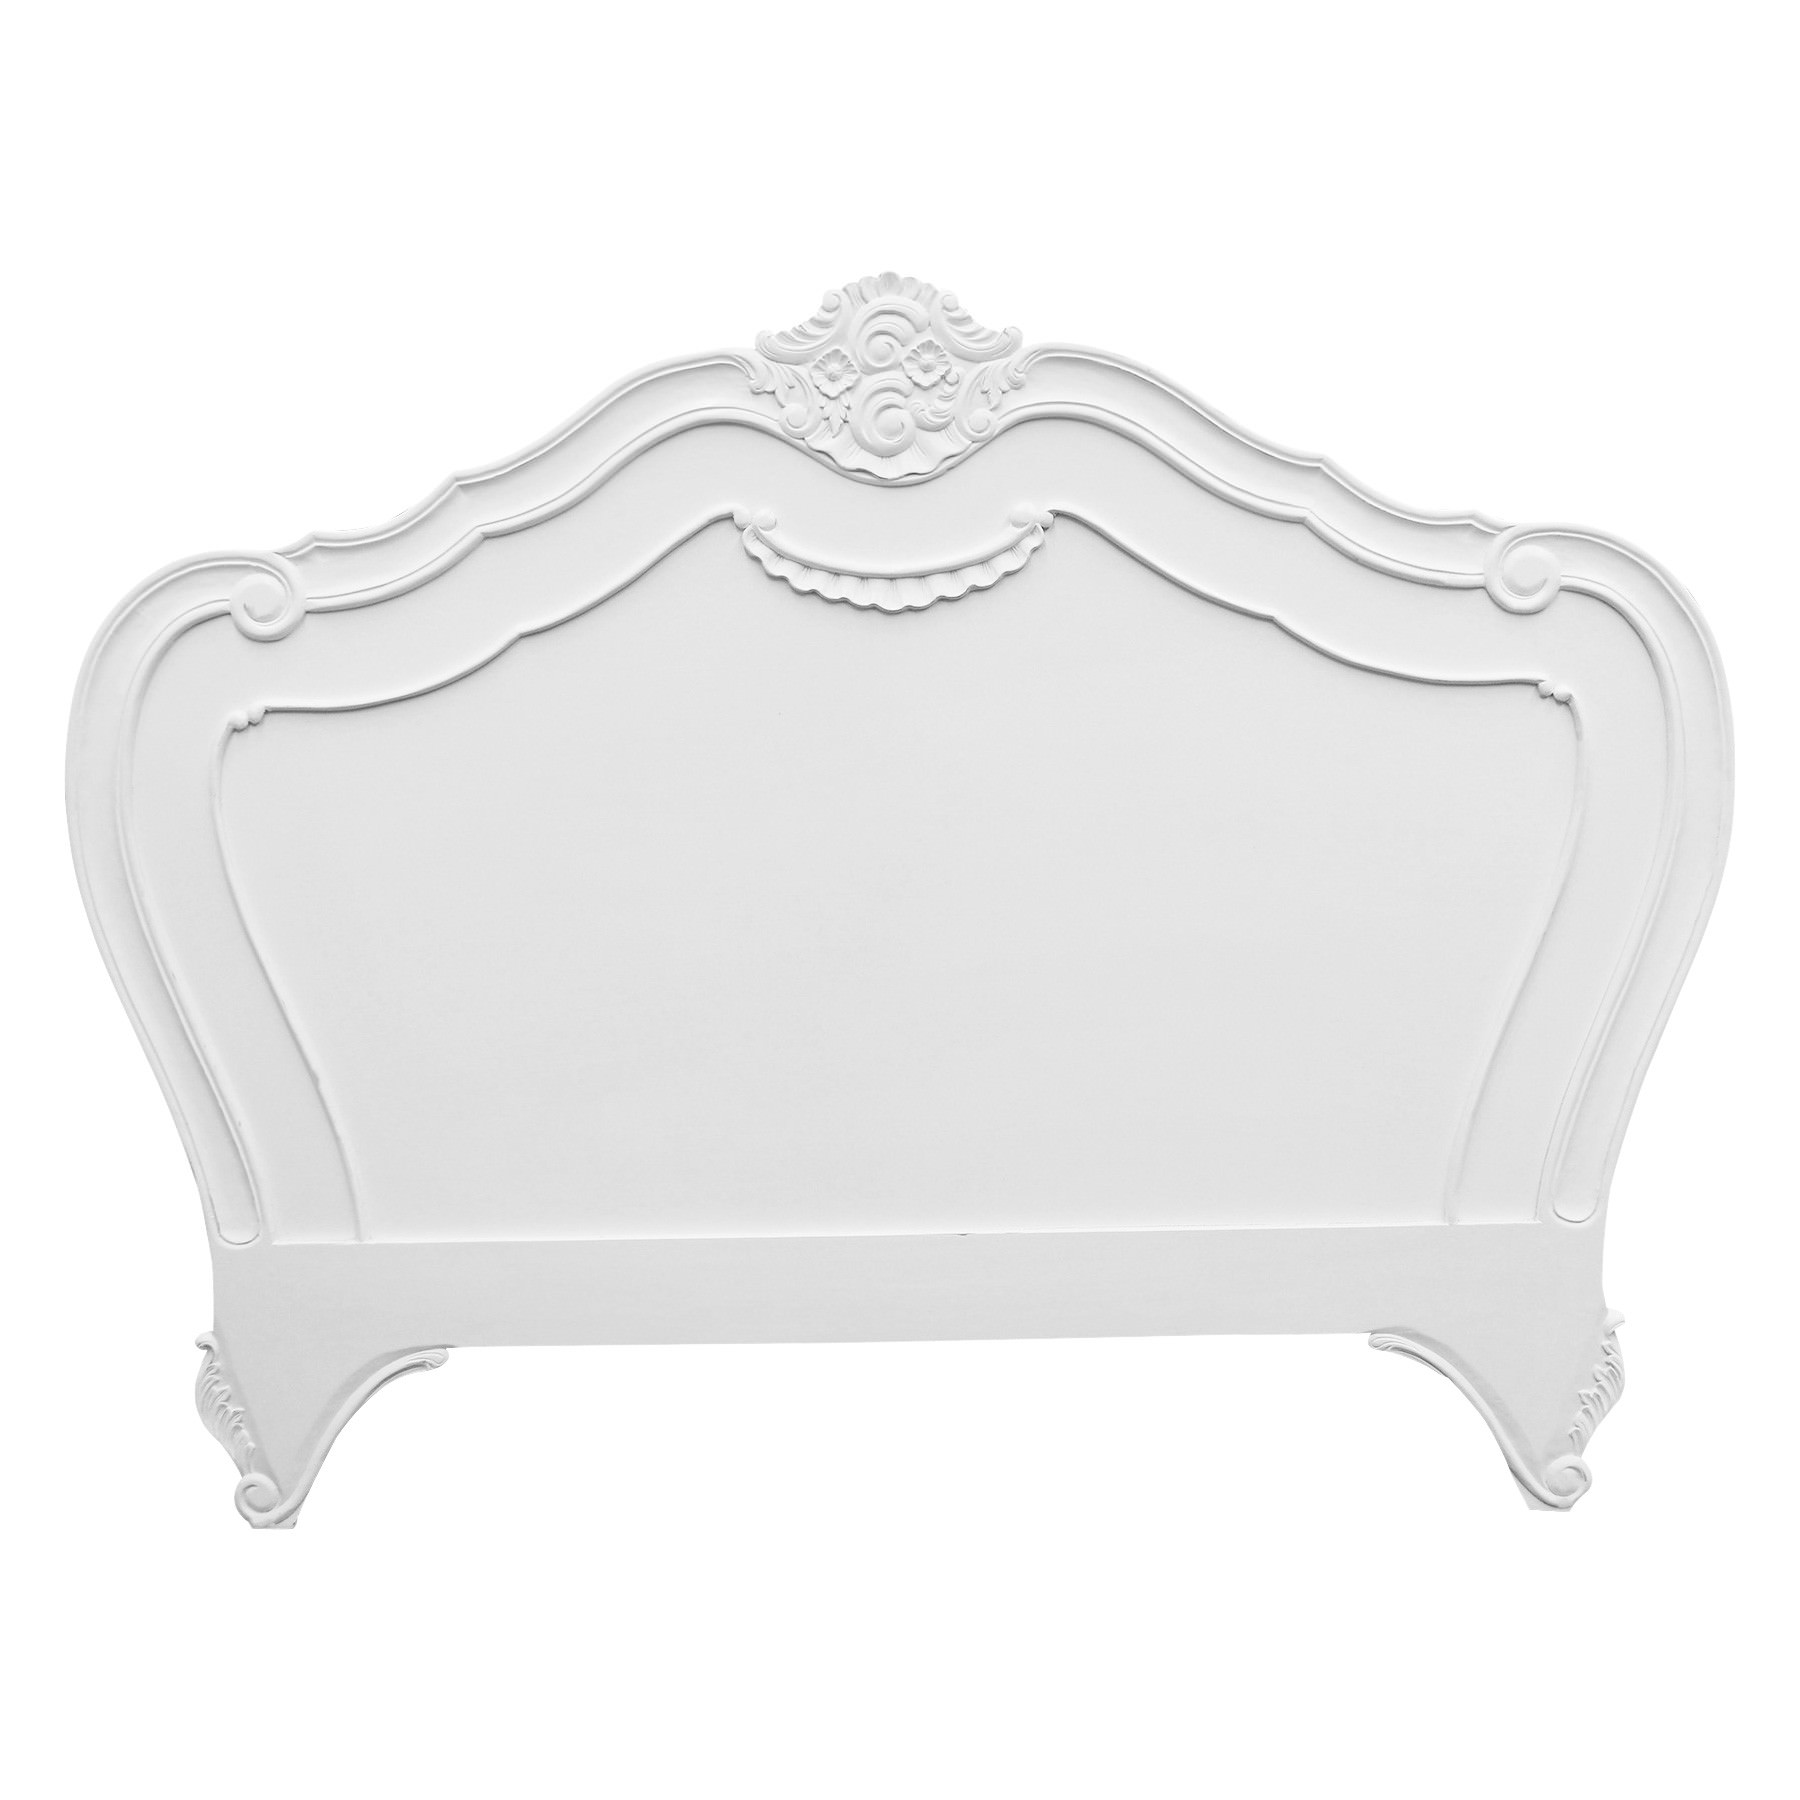 Challuy Hand Crafted Mahogany Queen Size Headboard, White